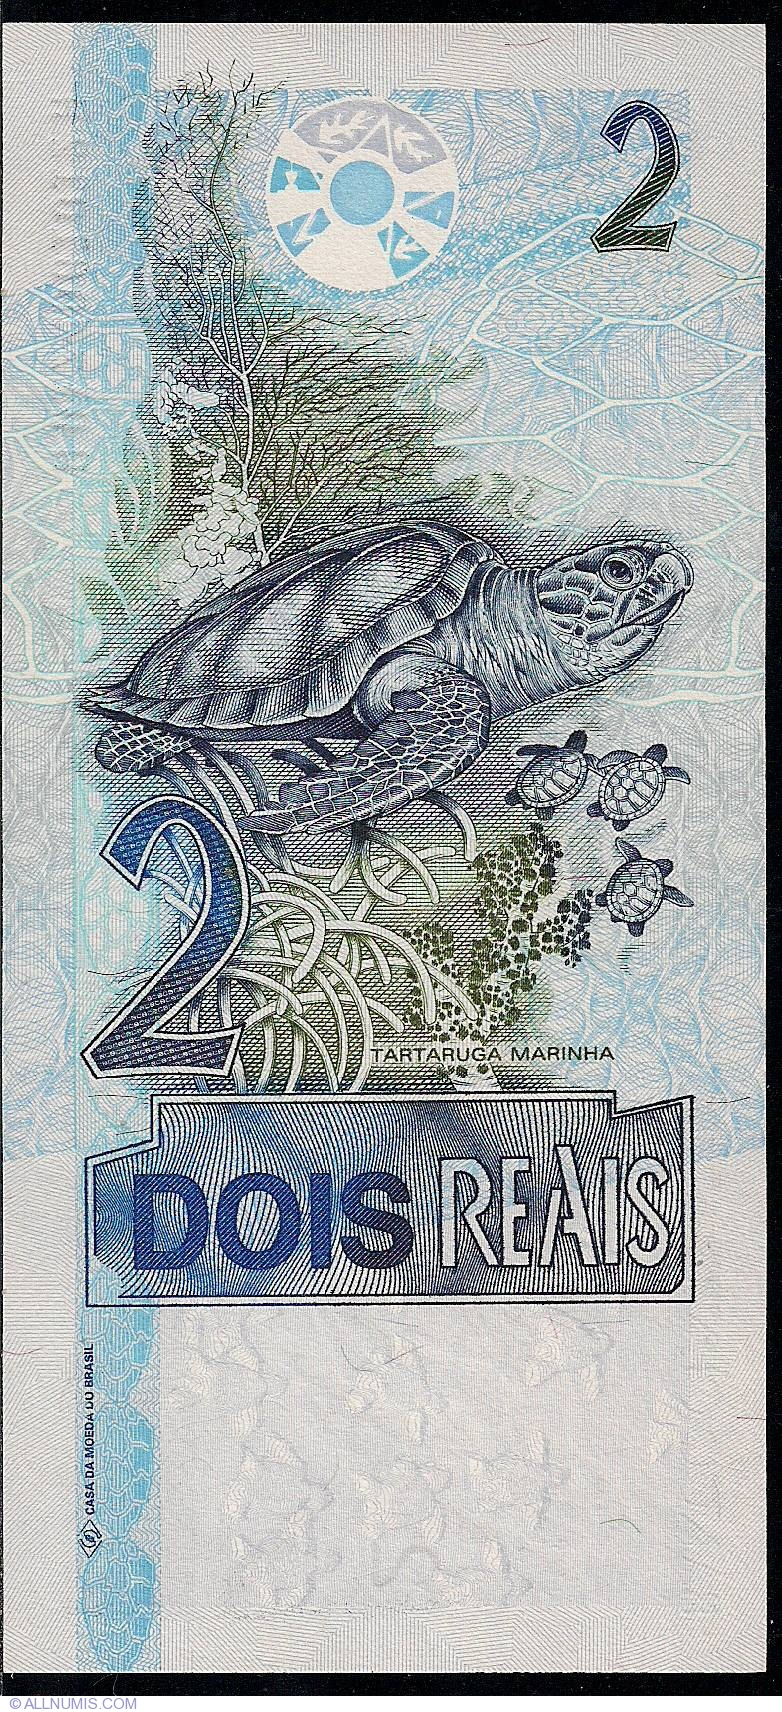 2 Reais ND(2001- ), 2001-2002 Issue - Brazil - Banknote - 1703